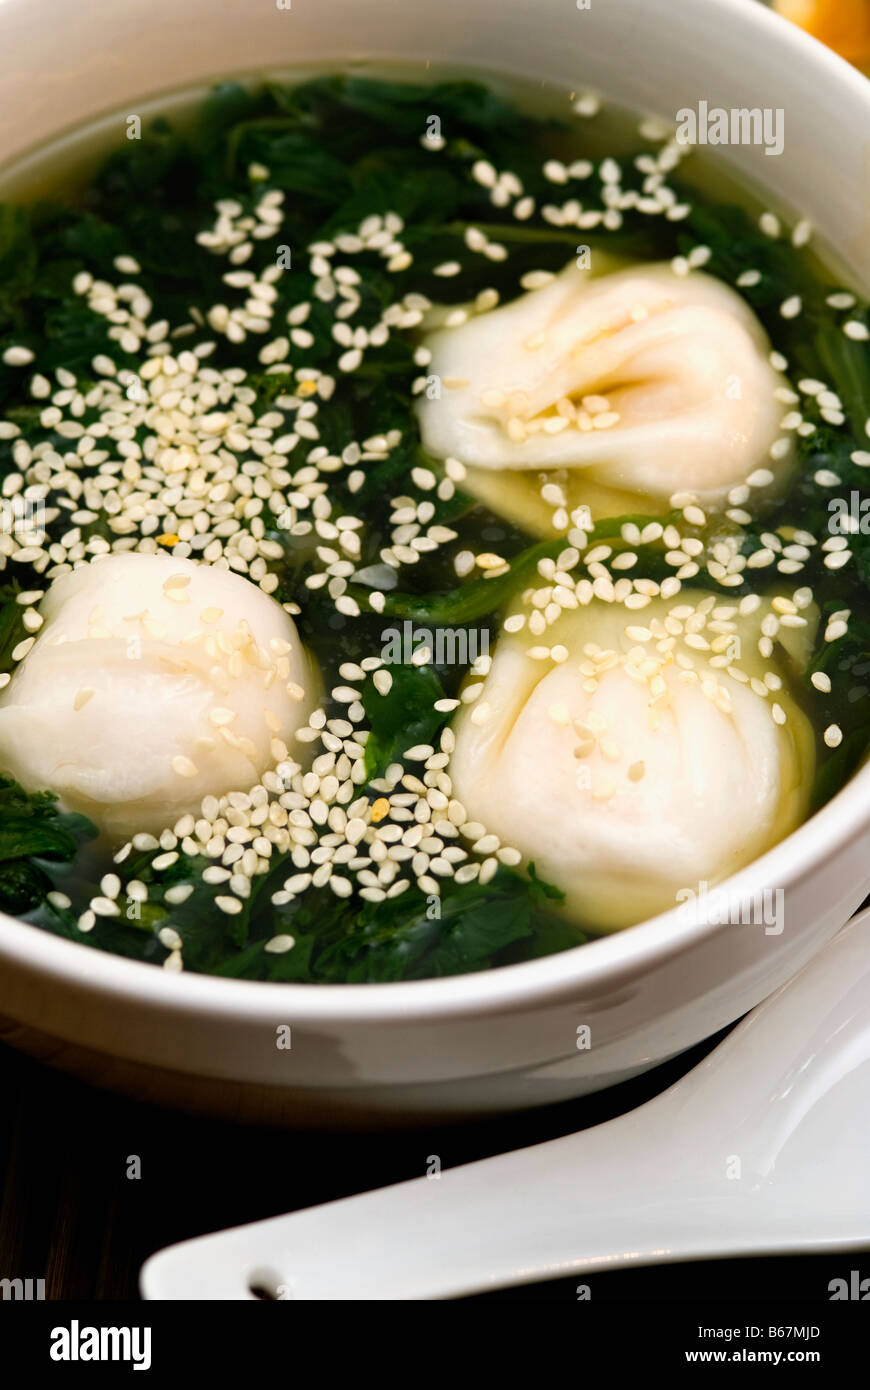 Close-up of Chinese dumplings in a bowl - Stock Image